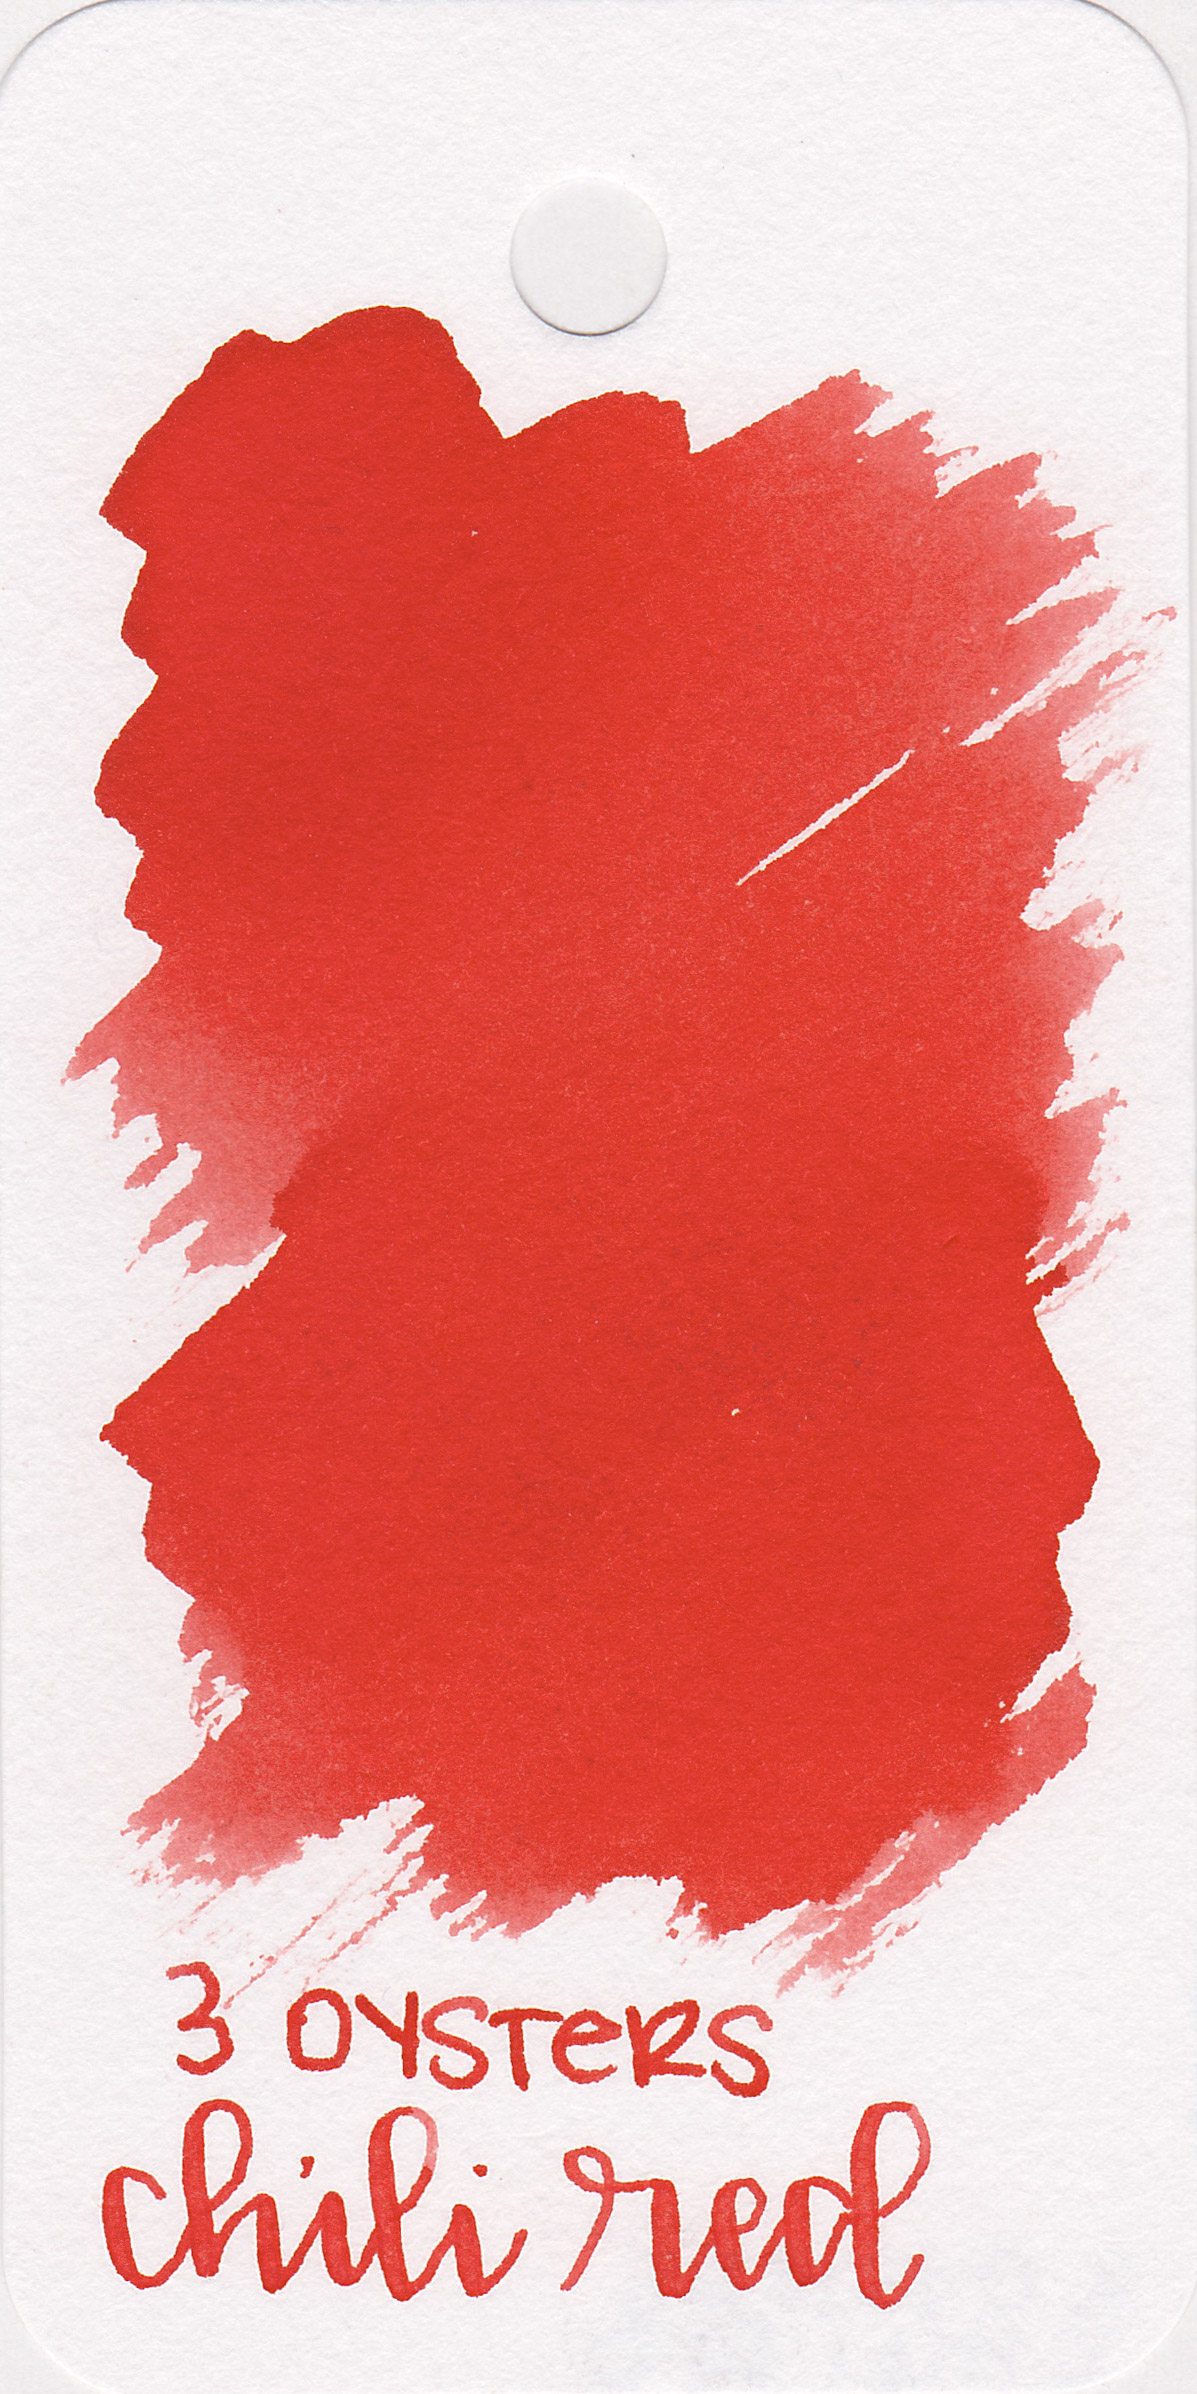 The color: - Chili Red is a bright, vibrant red.